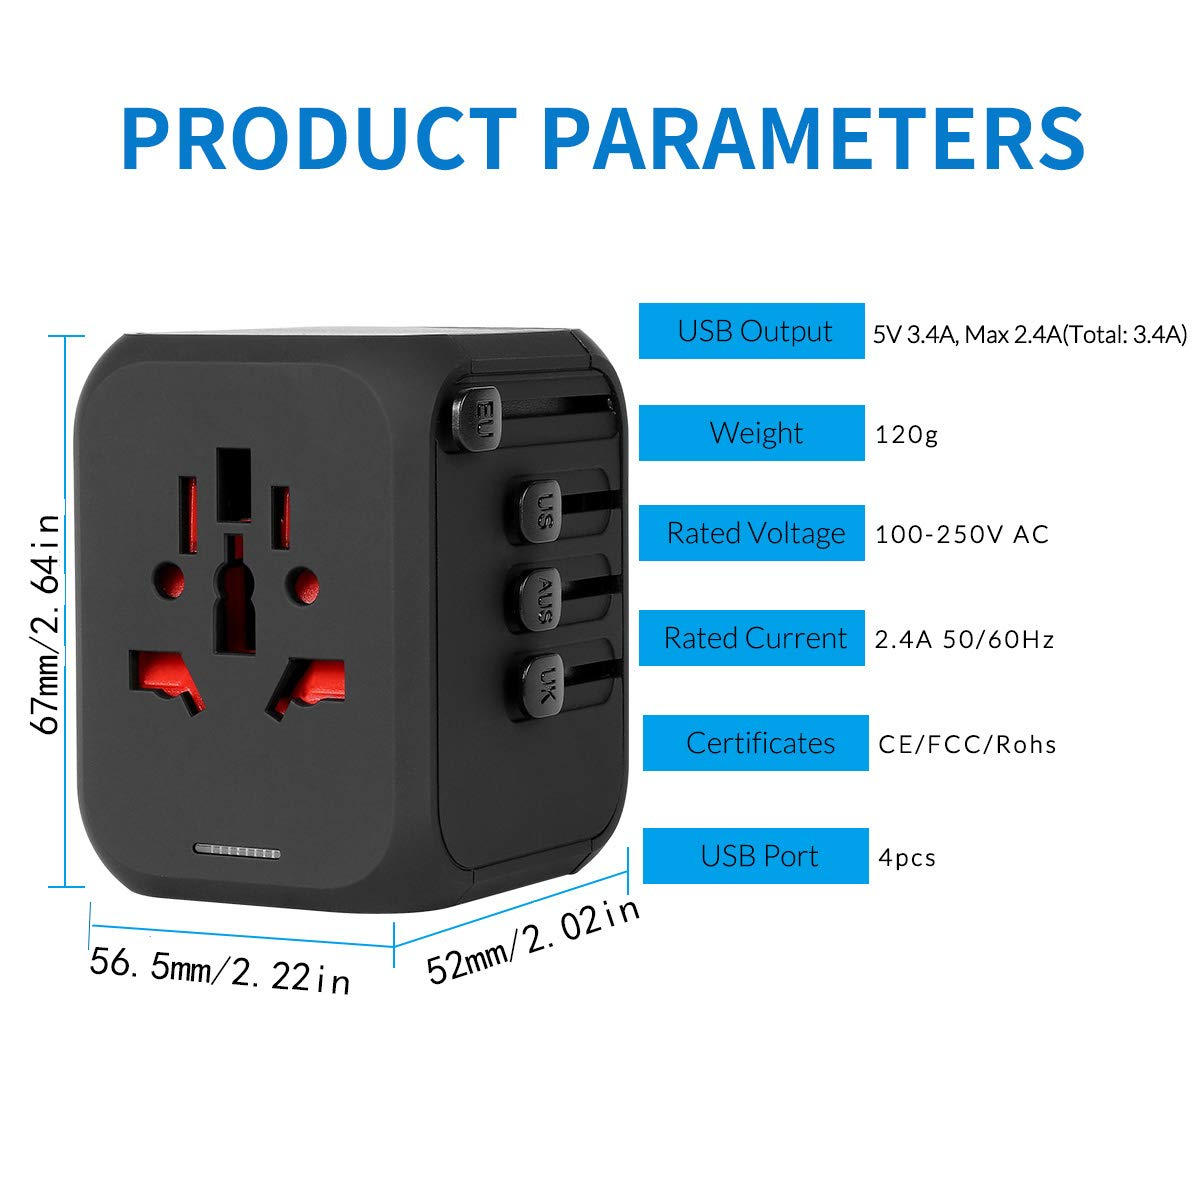 with 4 USB Charging Ports Universal European Power Wall Charger Plug Converter for Phone Tablet Laptop in Italy India Austria 170 Countries International Travel Plug//Outlet Adapter-Europe USA UK AU